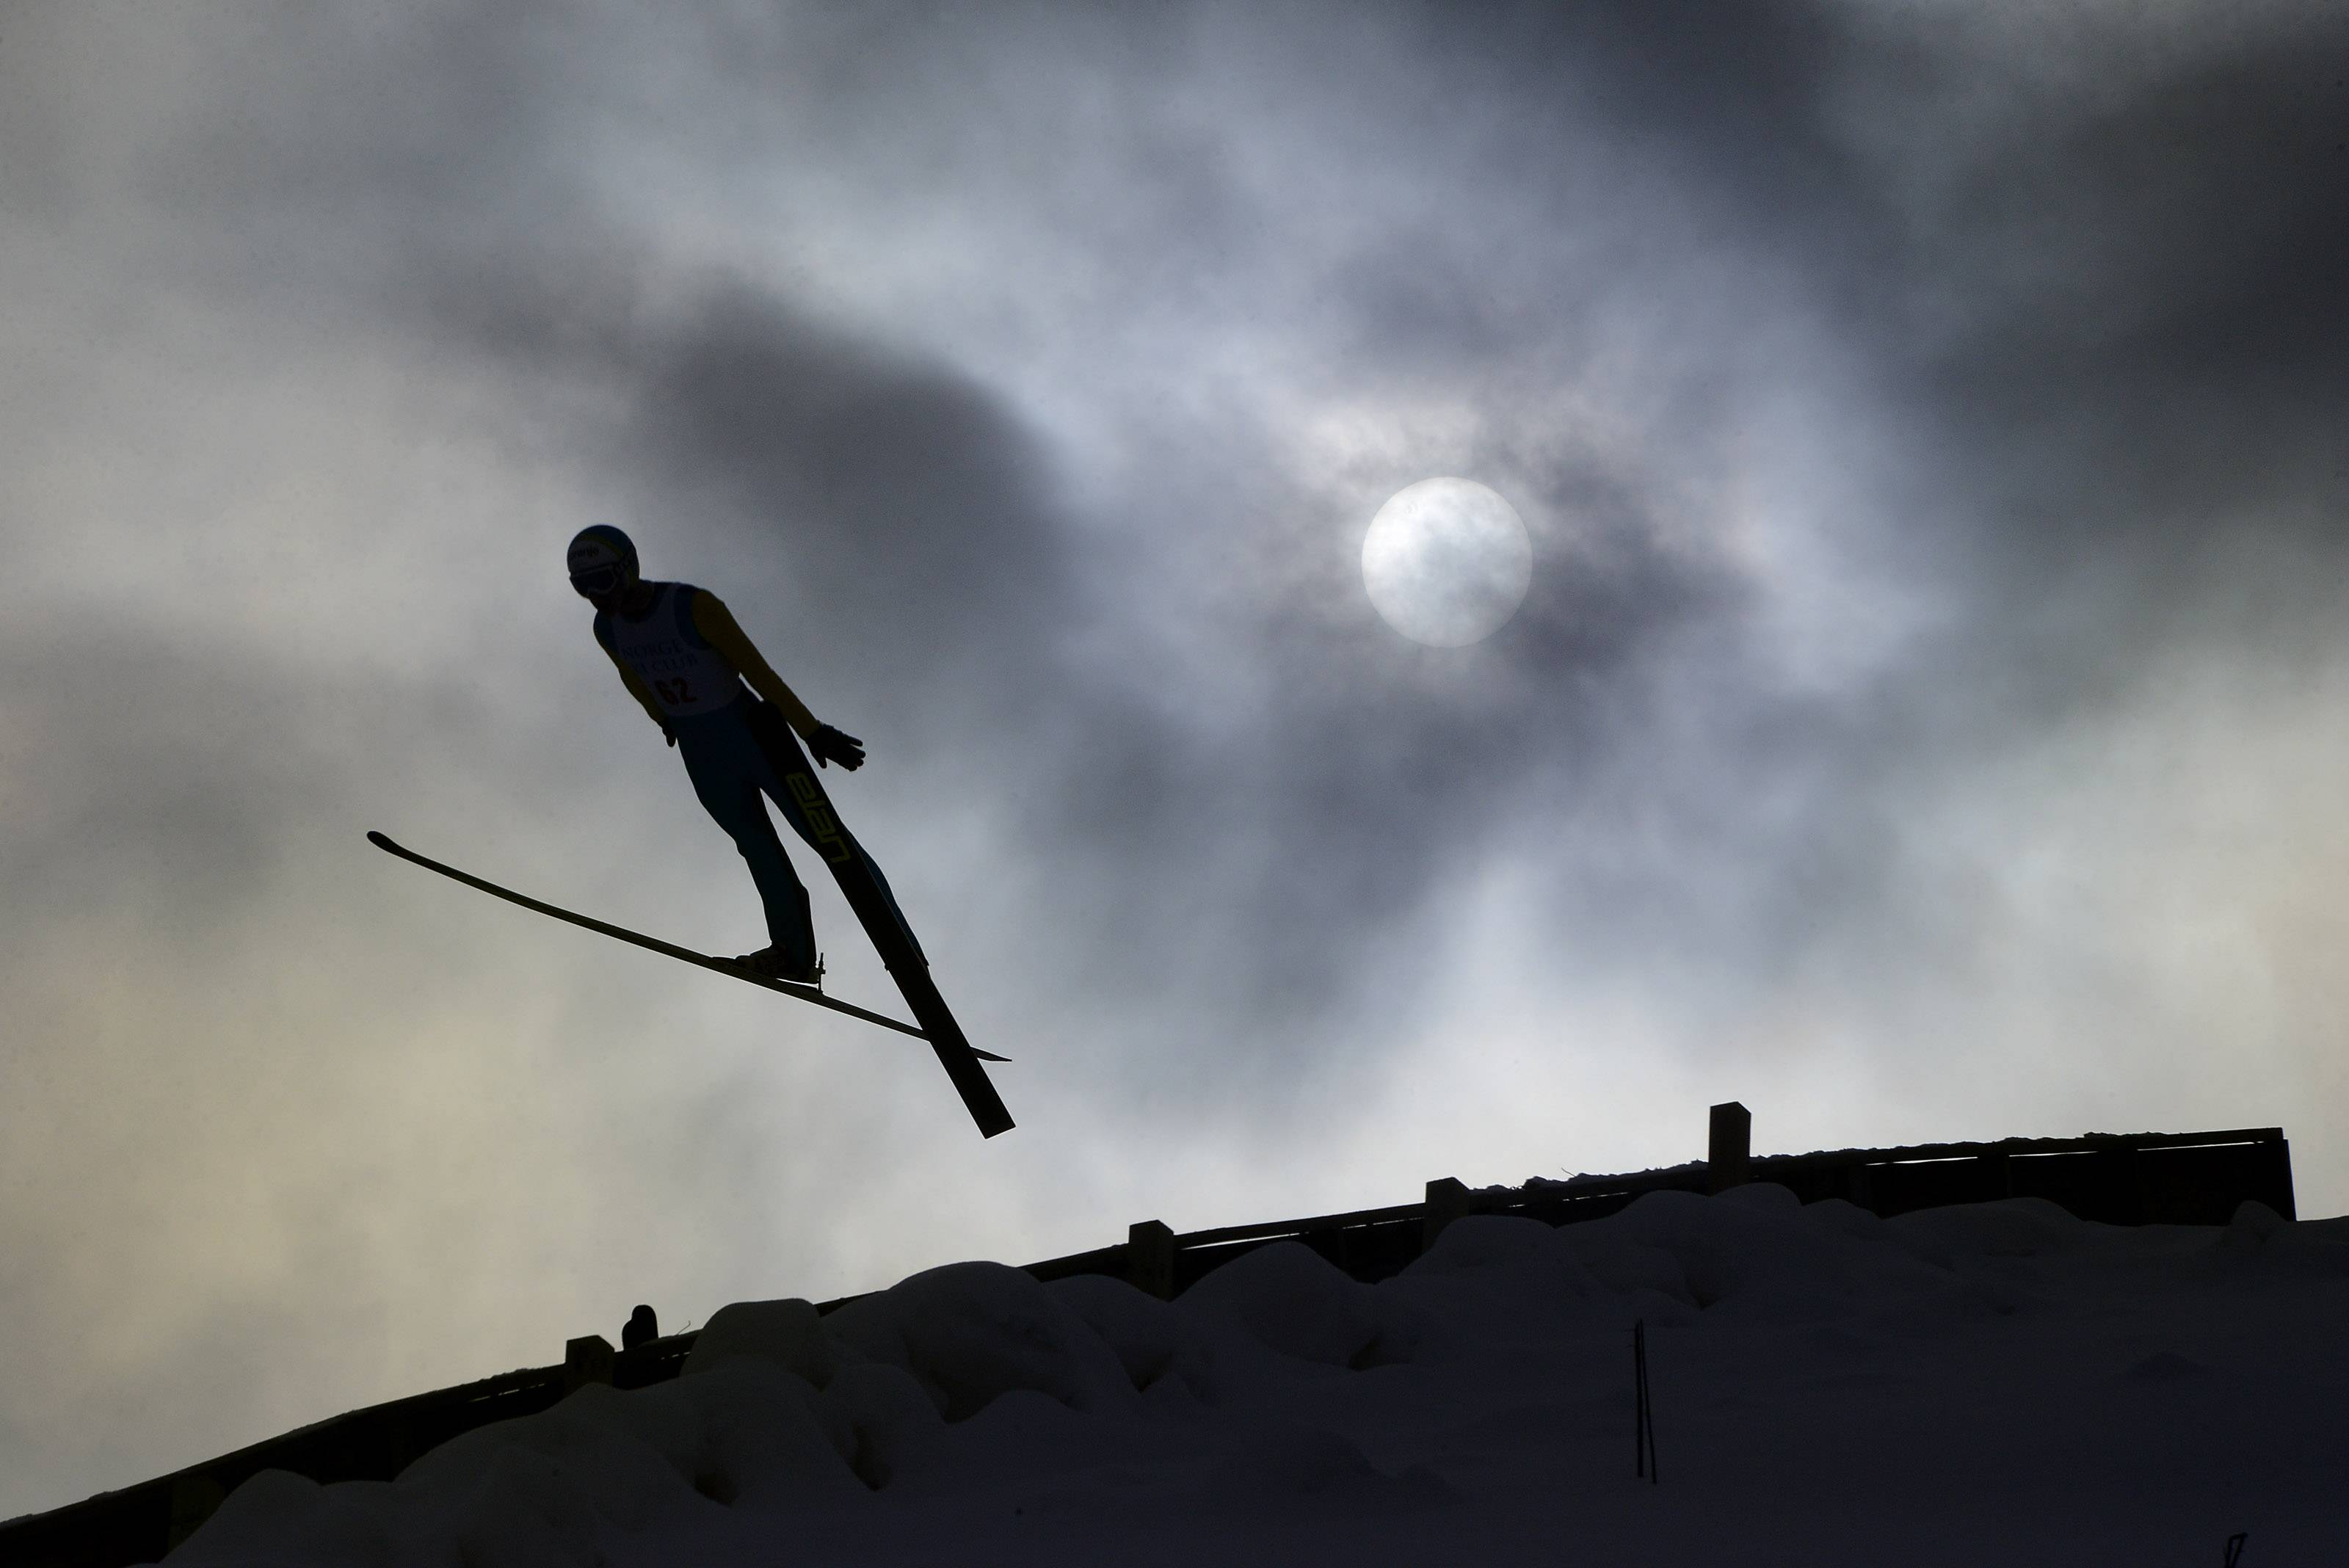 The snow was fake but the thrills were real for ski jumpers like this one at the Norge International Ski Jumping Tournament in Fox River Grove.